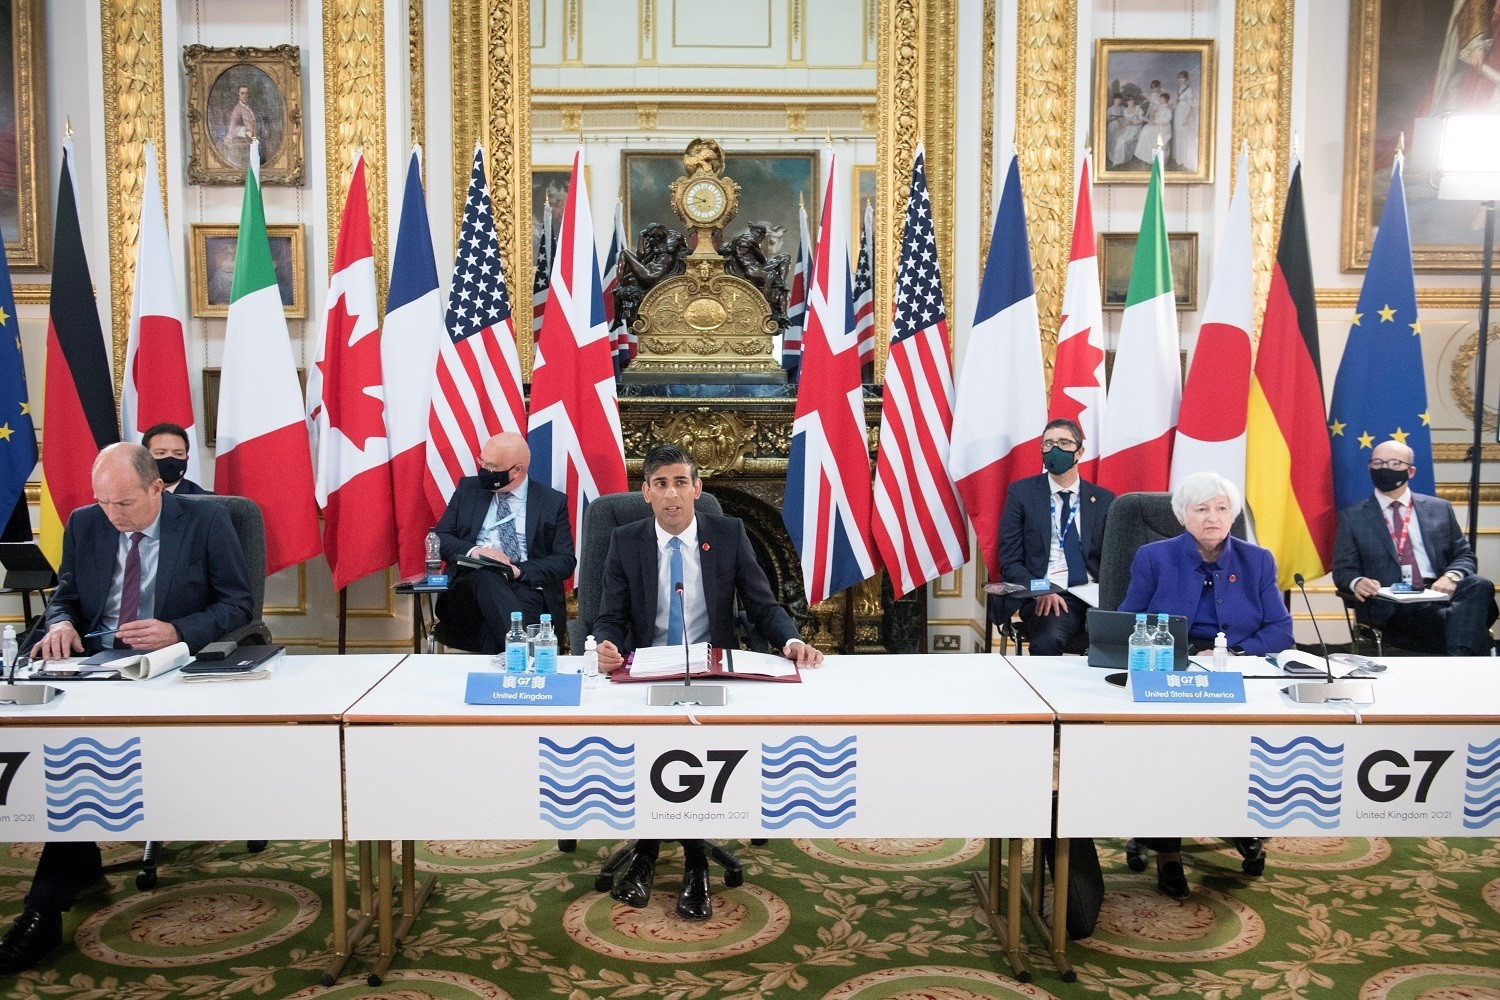 Britain's Chancellor of the Exchequer Rishi Sunak speaks at a meeting of finance ministers from across the G7 nations ahead of the G7 leaders' summit, at Lancaster House in London, Britain June 4, 2021. Stefan Rousseau/PA Wire/Pool via REUTERS - RC2KTN9E4304